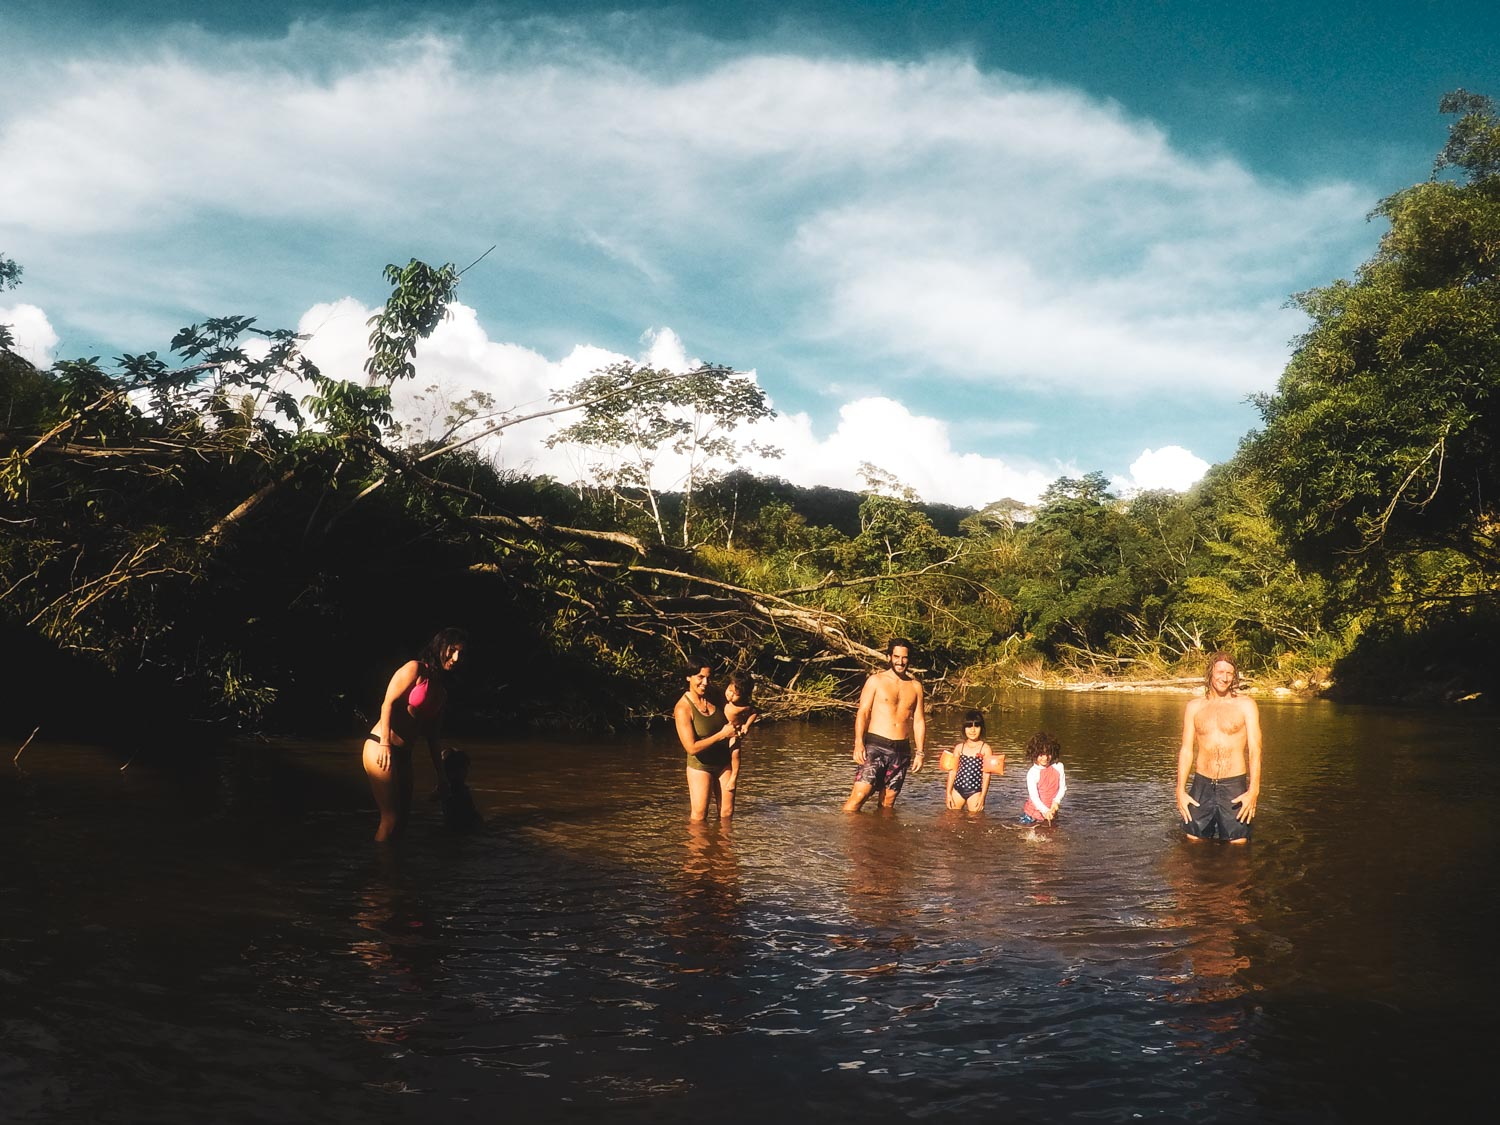 Spending time with friends in the river, Chirapa Manta